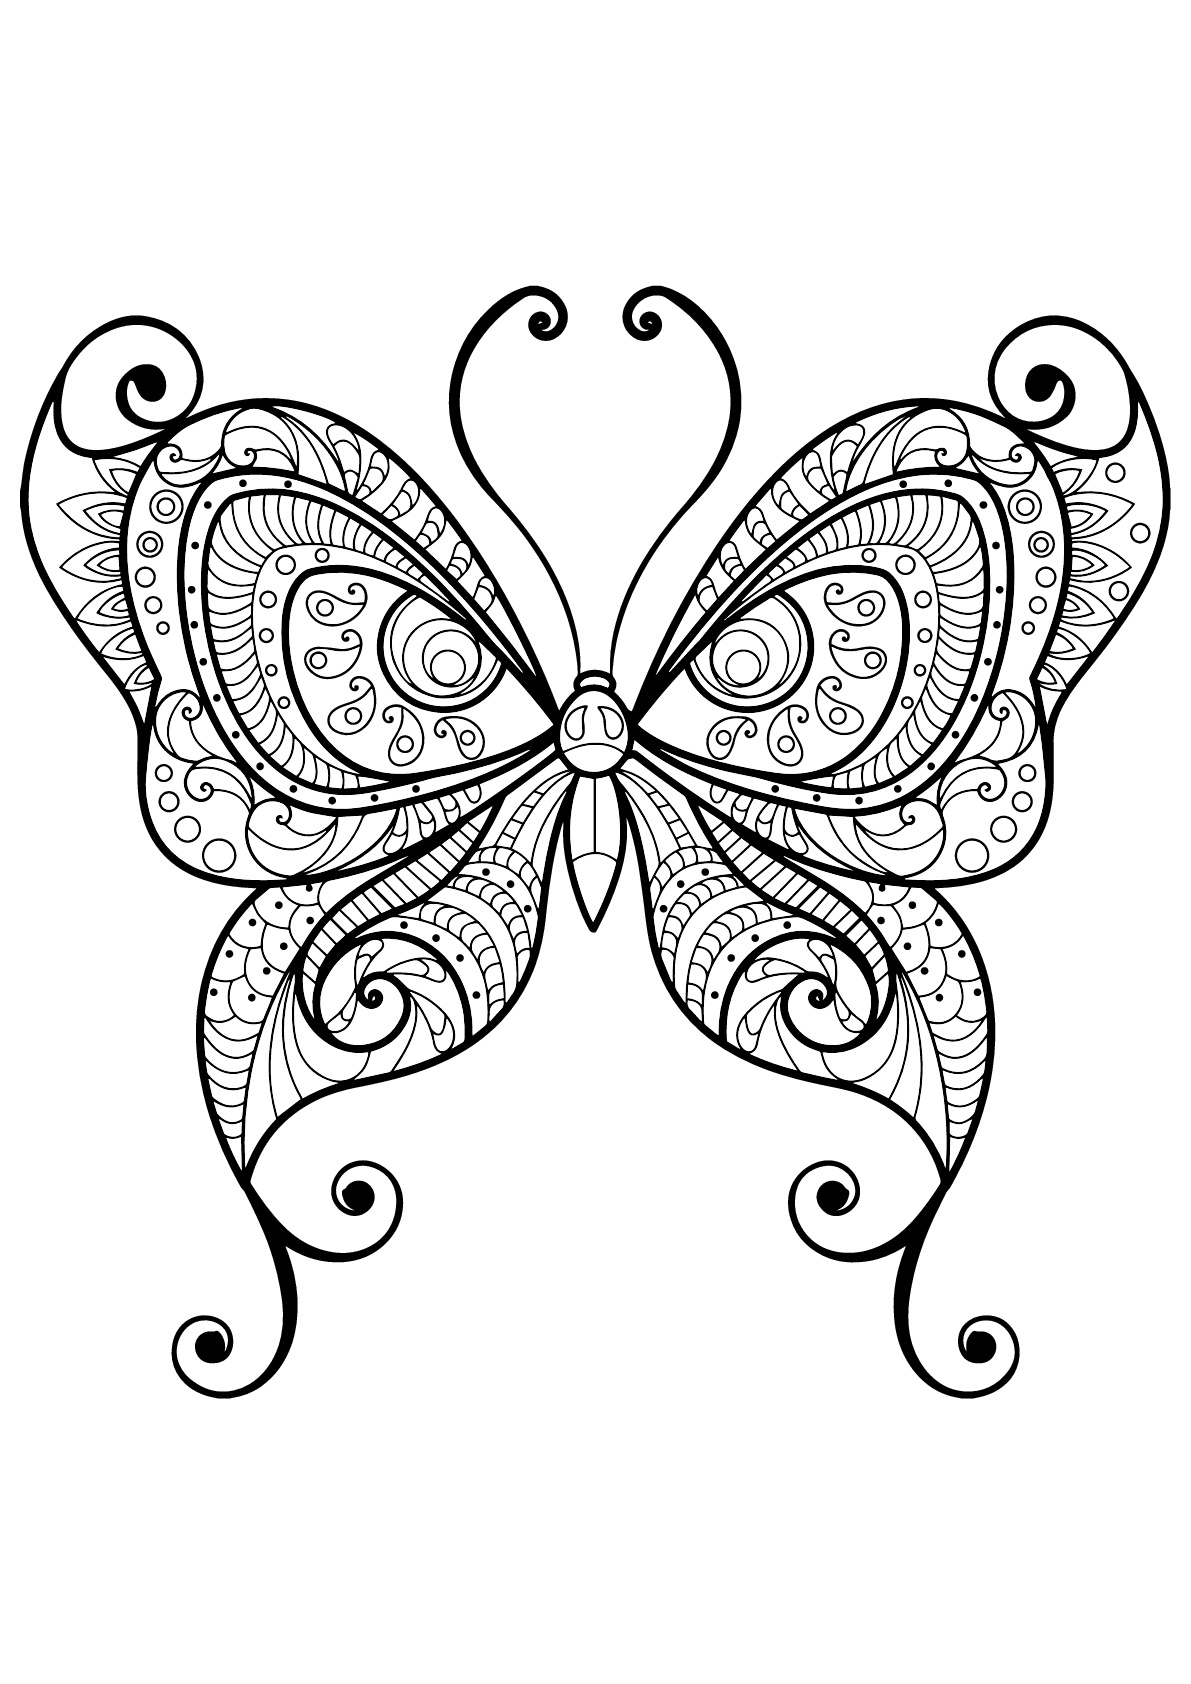 Butterflies free to color for kids - Butterflies - Coloring pages ...